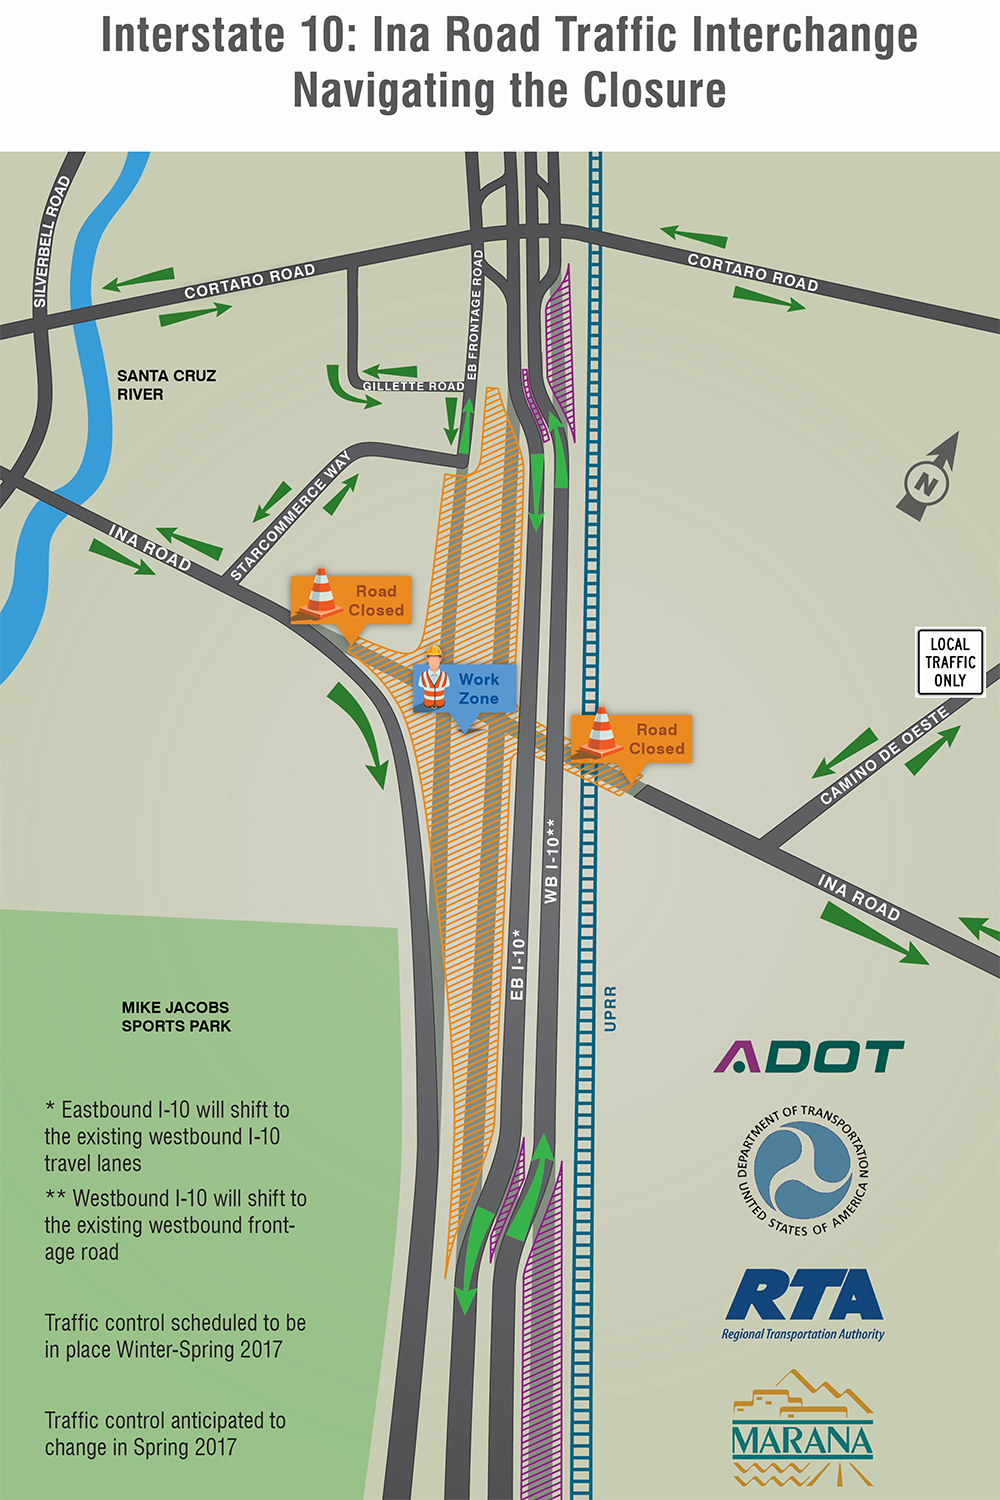 2-Year Construction Closure at Ina Road and I-10 Starts ... on interstate 80 map, highway 82 map, interstate 27 map, interstate 8 map, i-70 colorado road map, texas map, interstate 20 map, lincoln way map, interstate 75 map, interstate 5 map, interstate 81 map, interstate 422 map, interstate 25 map, interstate 4 map, interstate 70 map, i-10 map, interstate 421 map, interstate i-10,